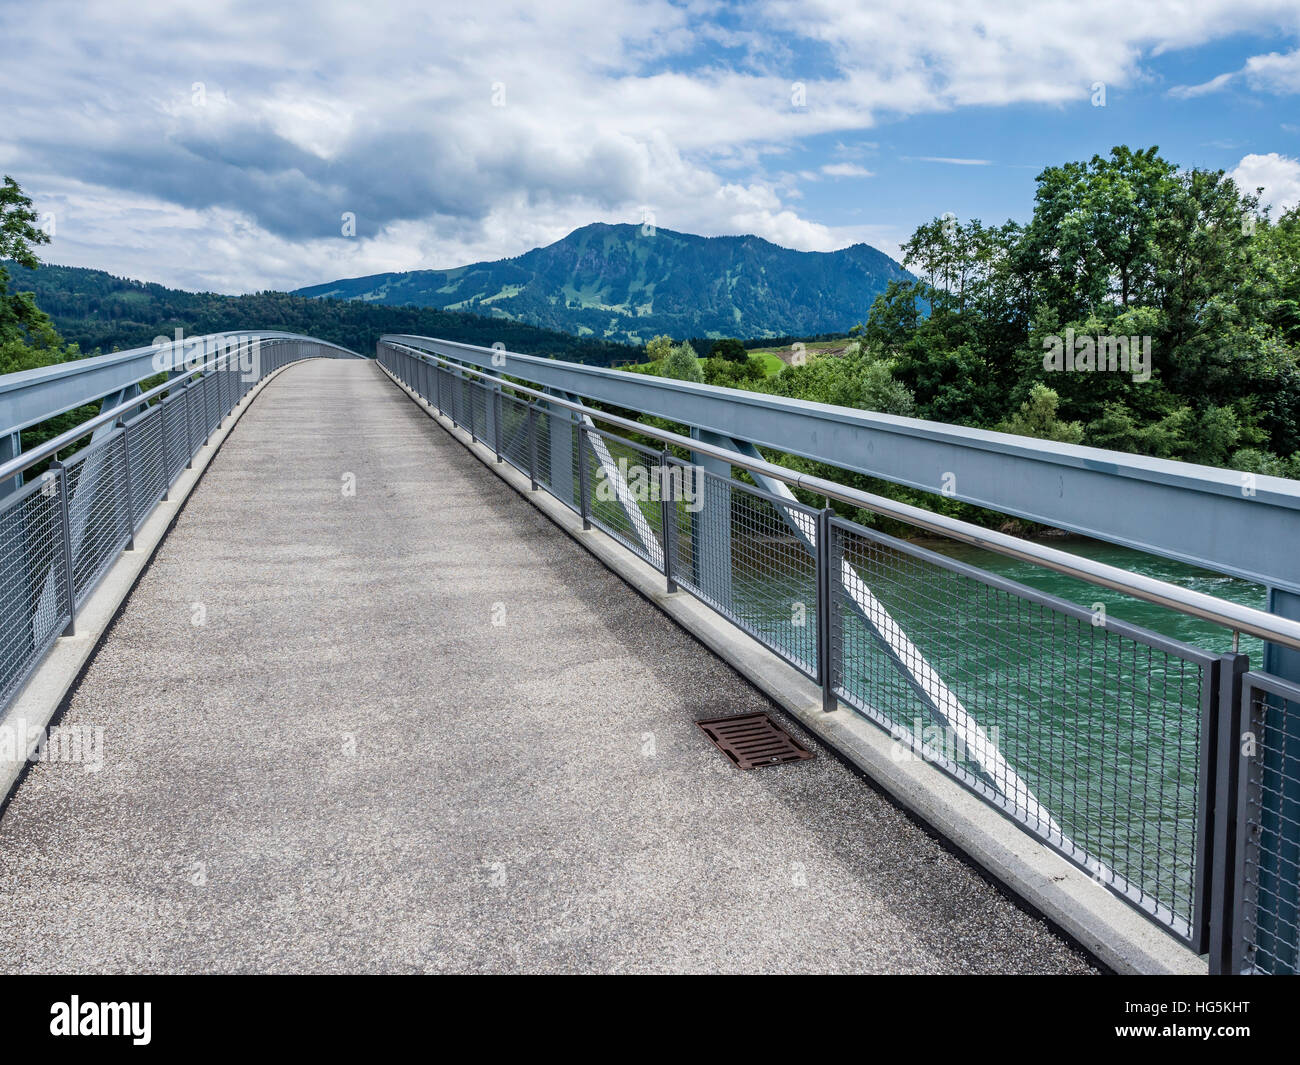 Bridge over river Iller, near Immenstadt, mountain Grünten in the back, Allgaue, Bavaria, Germany Stock Photo